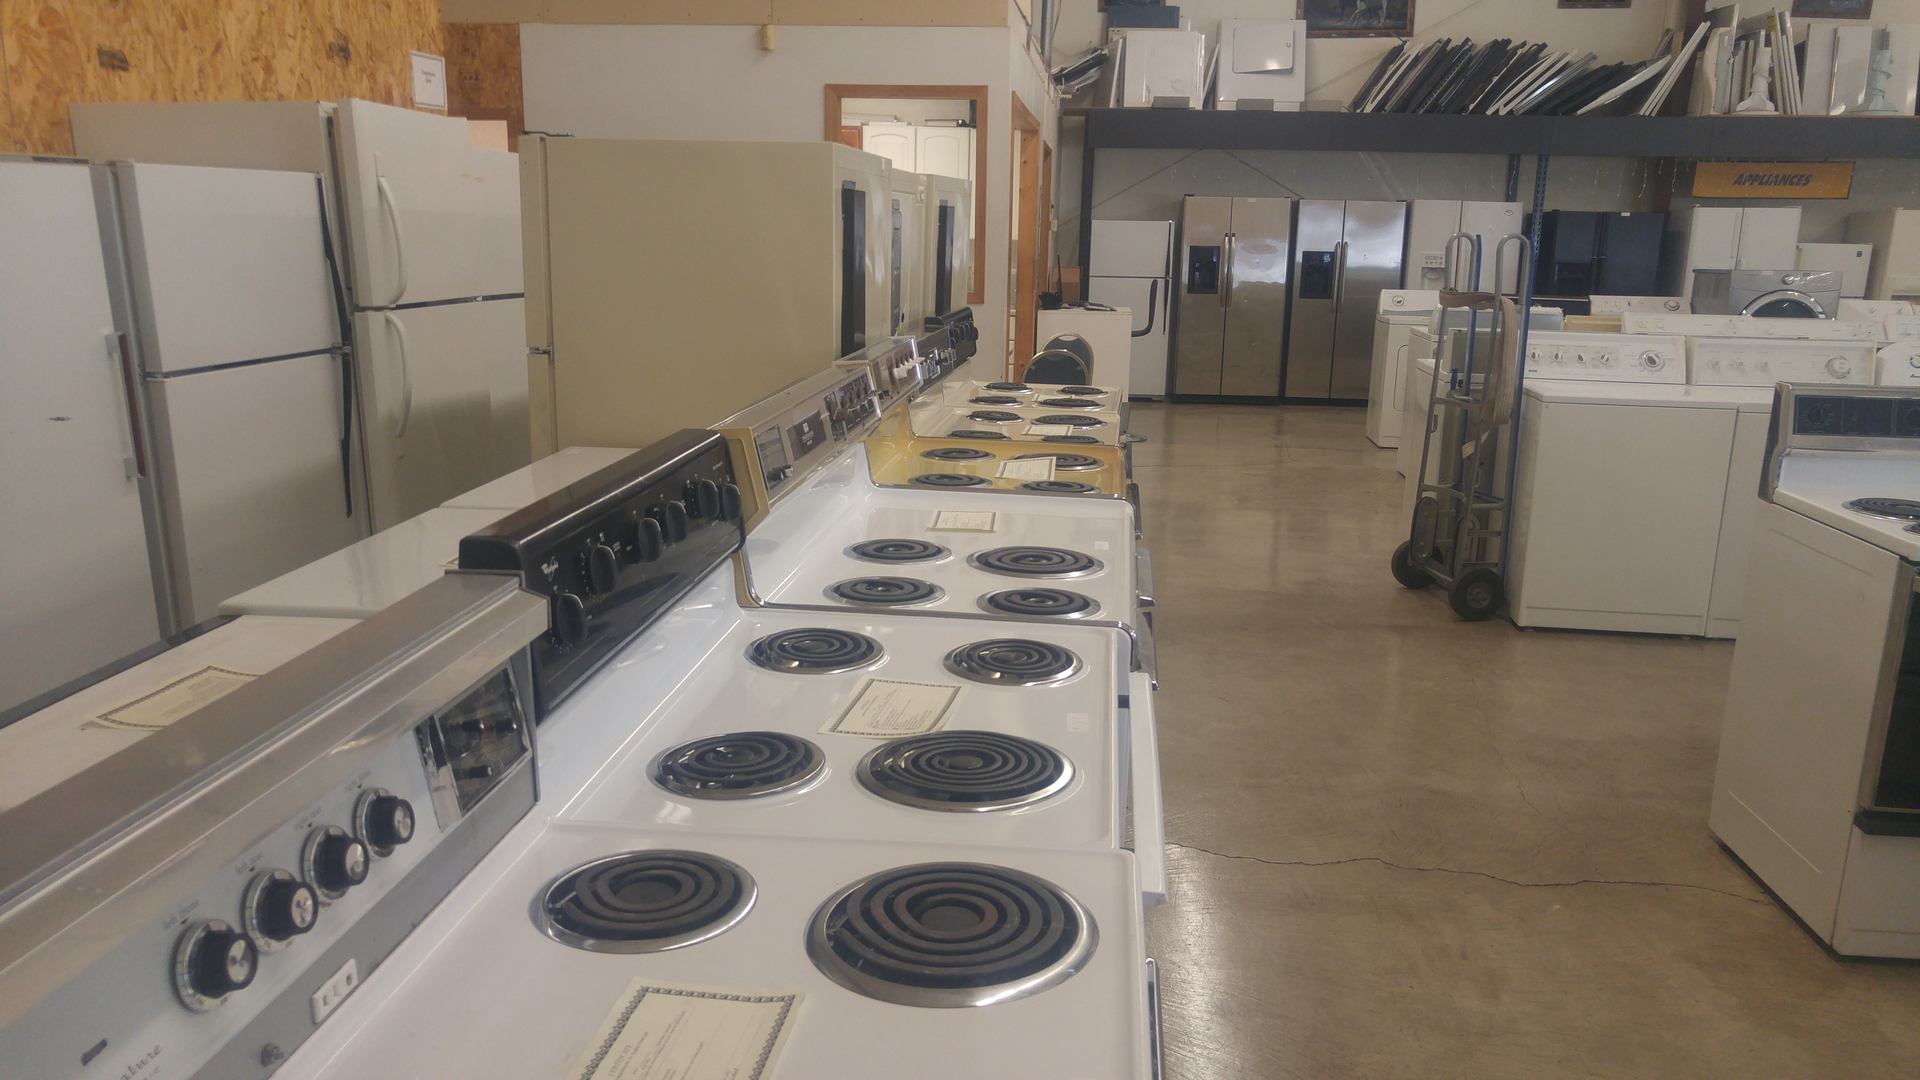 Appliance Warehouse - Used Appliances, High Quality